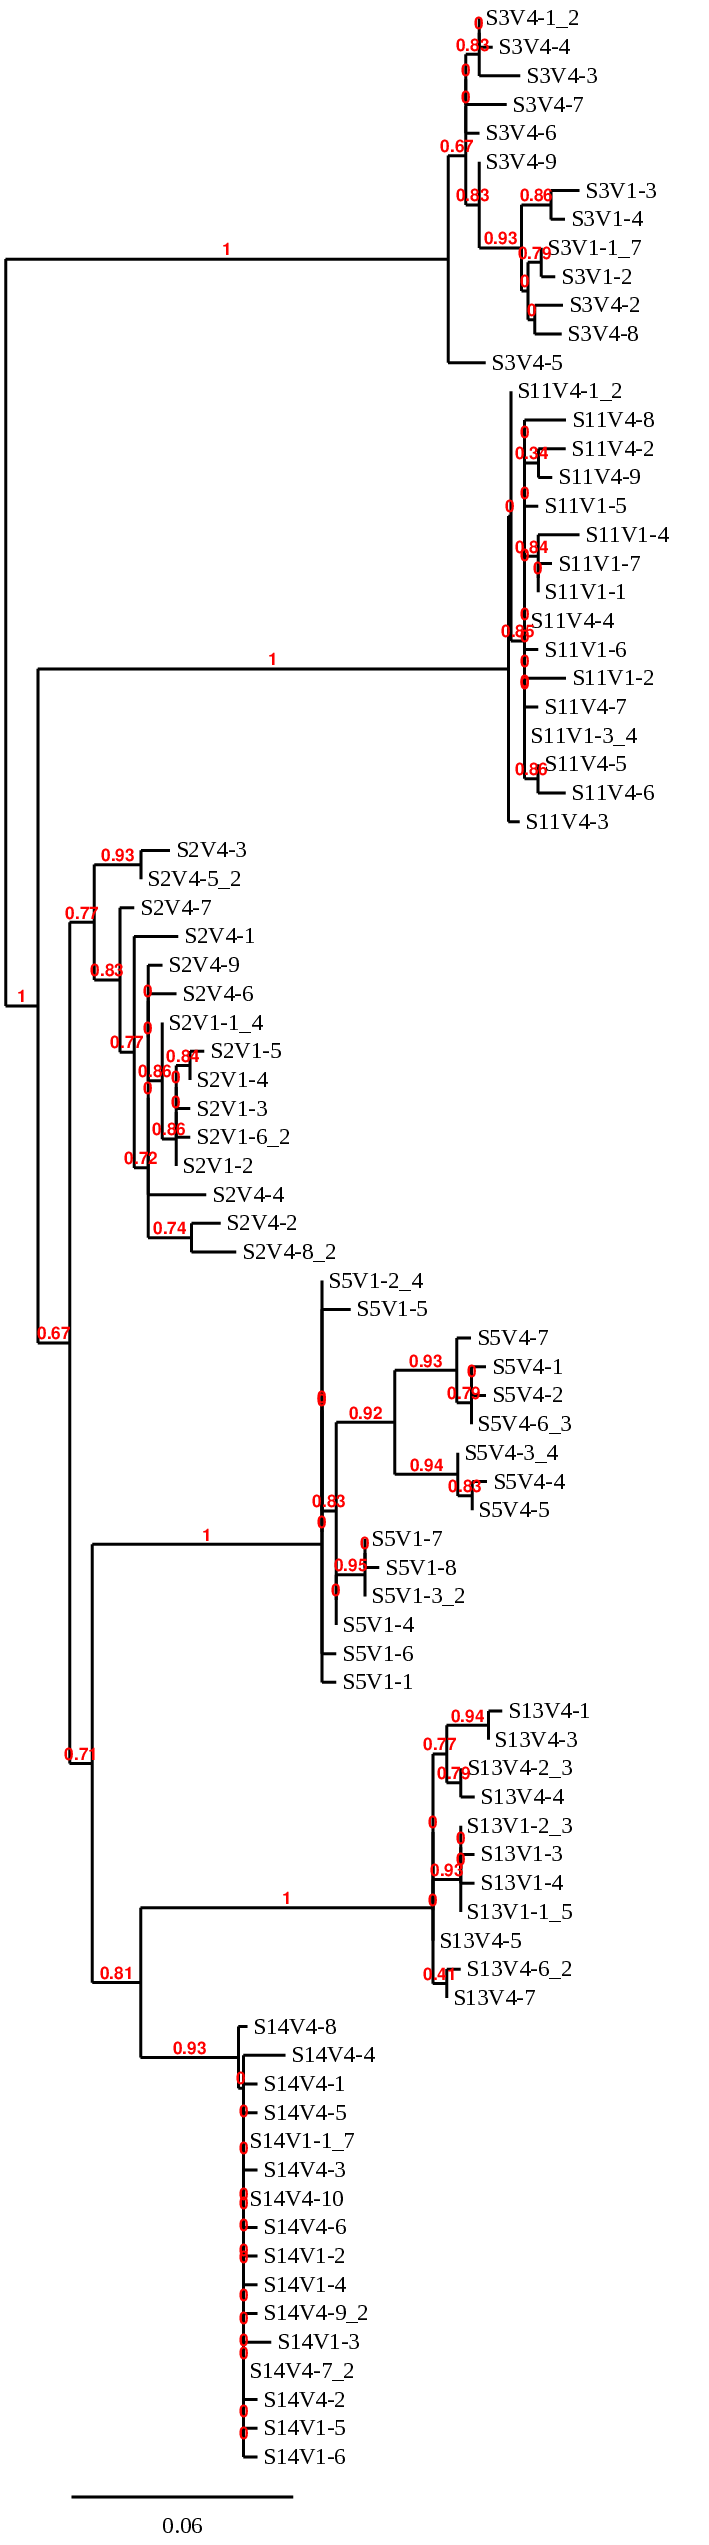 Phylo tree visit 1 AND 4 all sequences.png